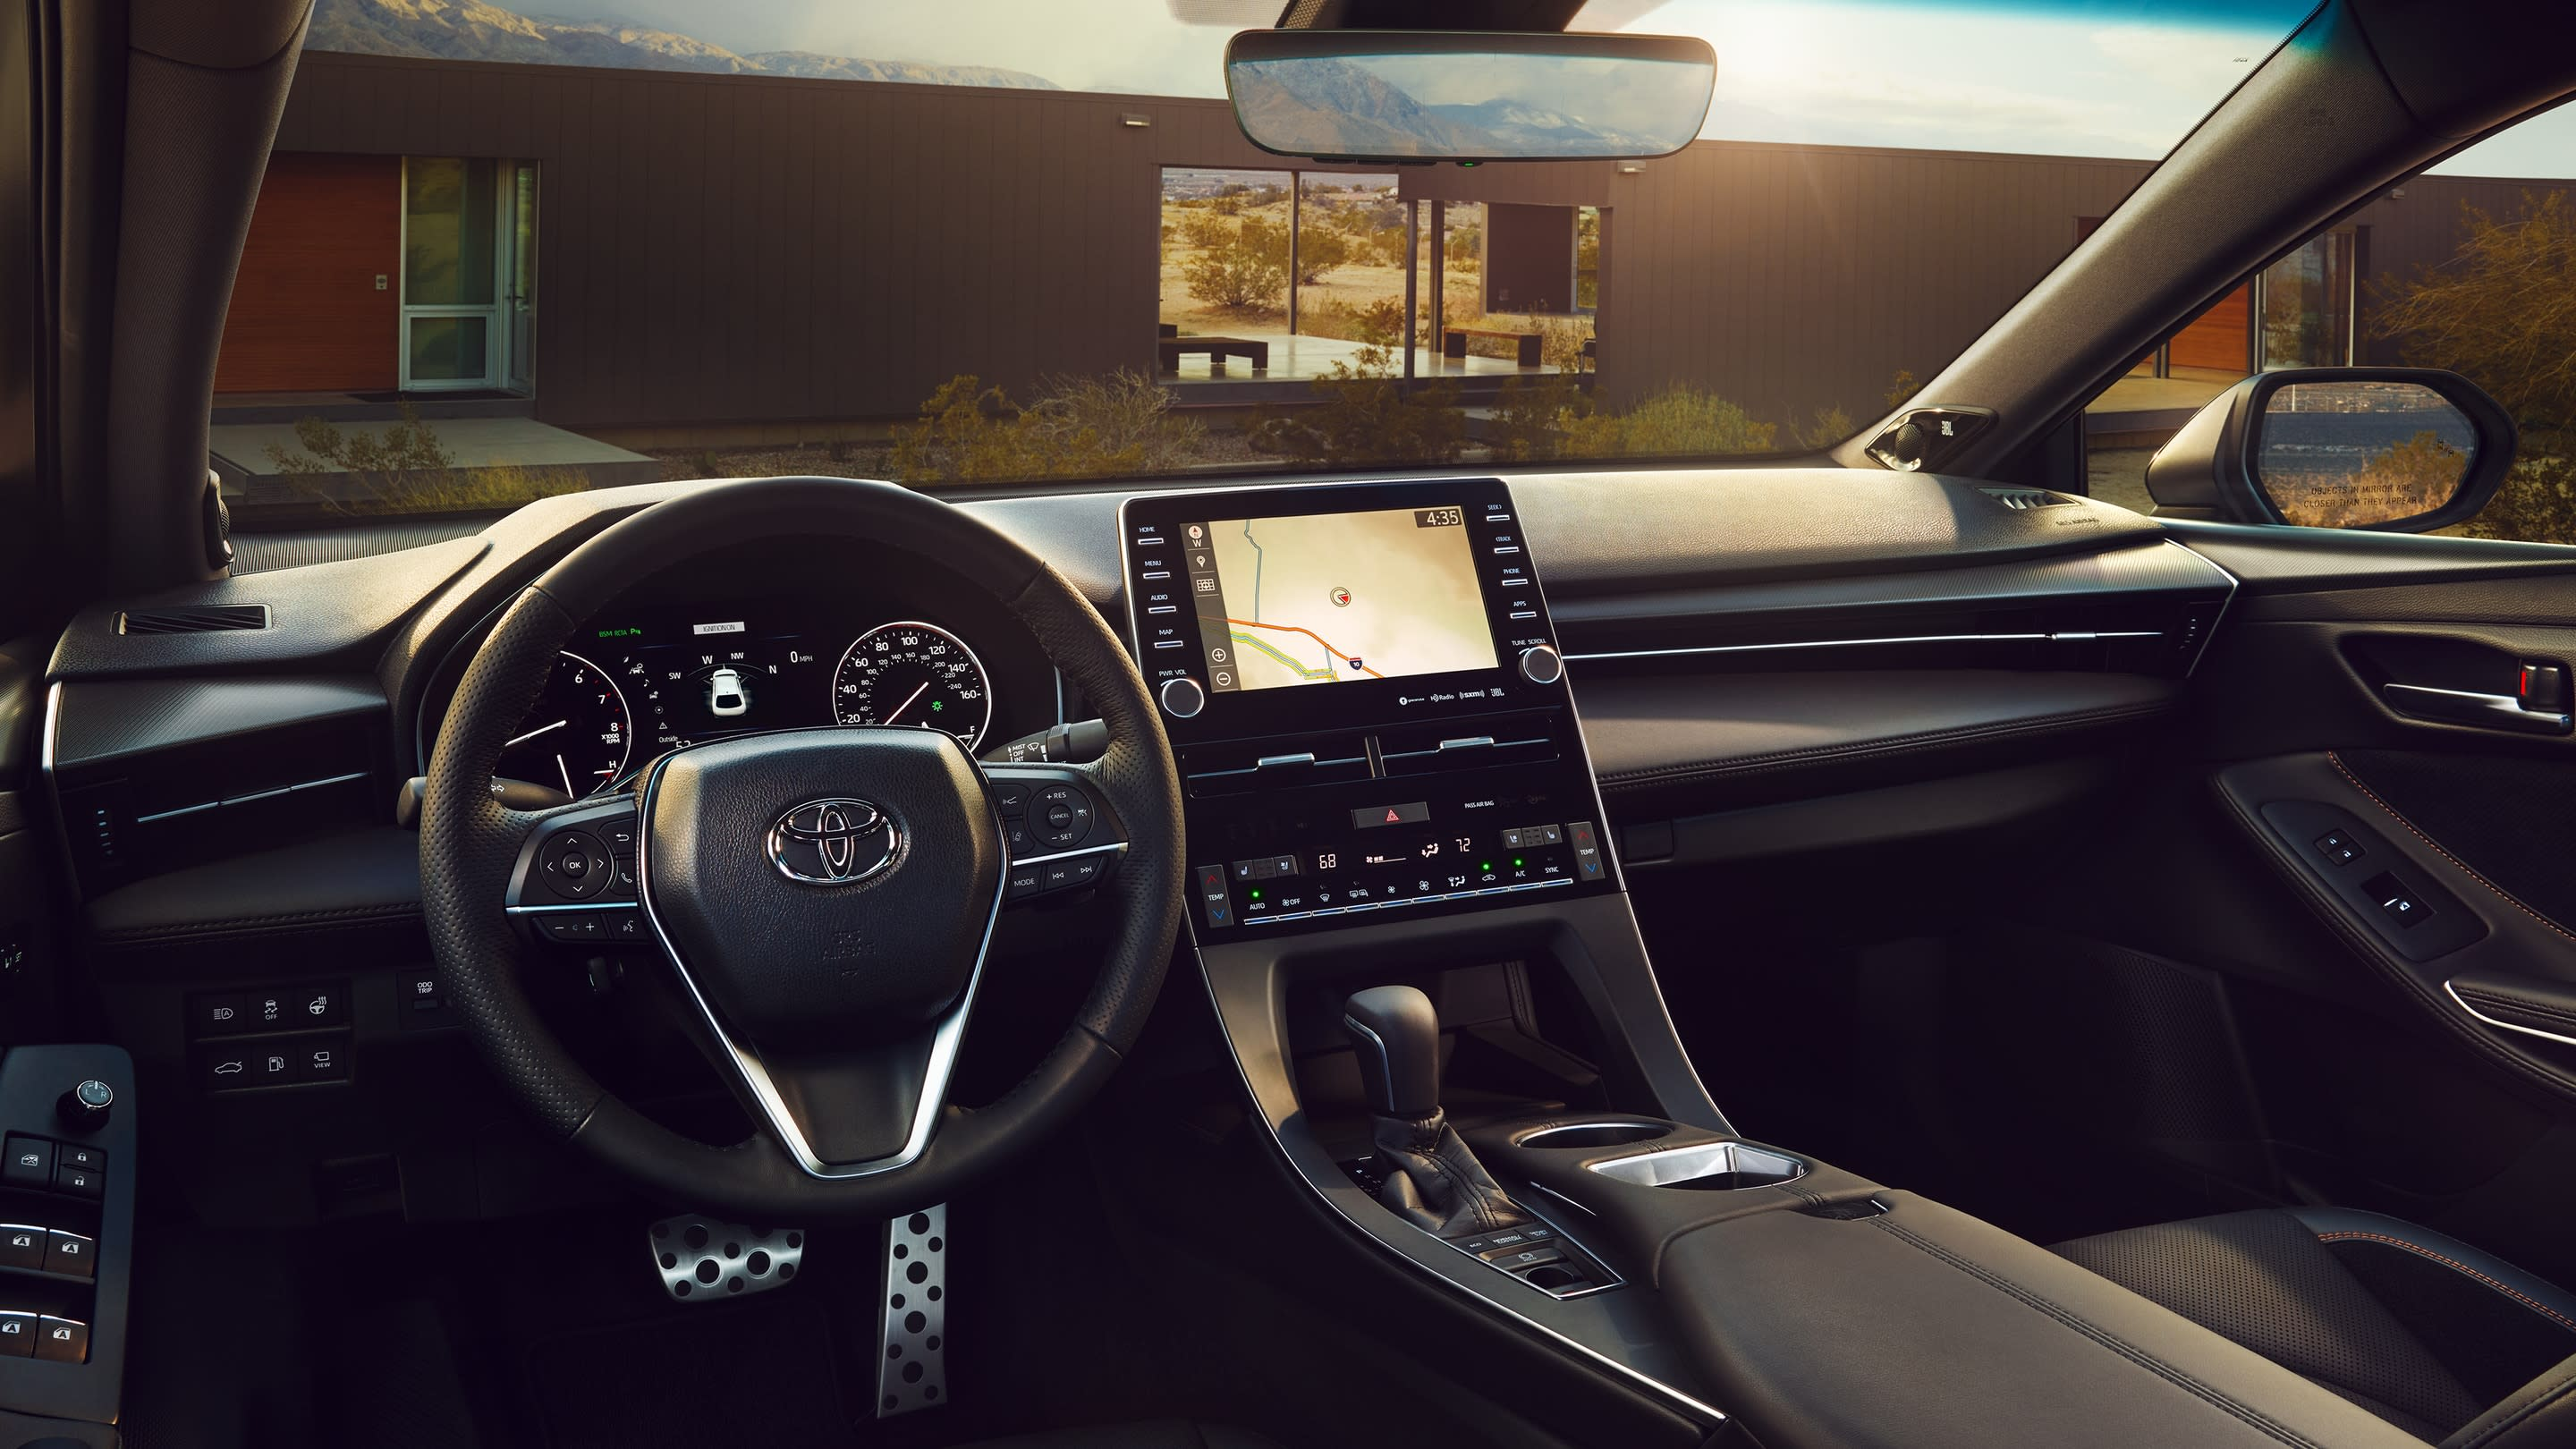 Gorgeous Interior of the Toyota Avalon